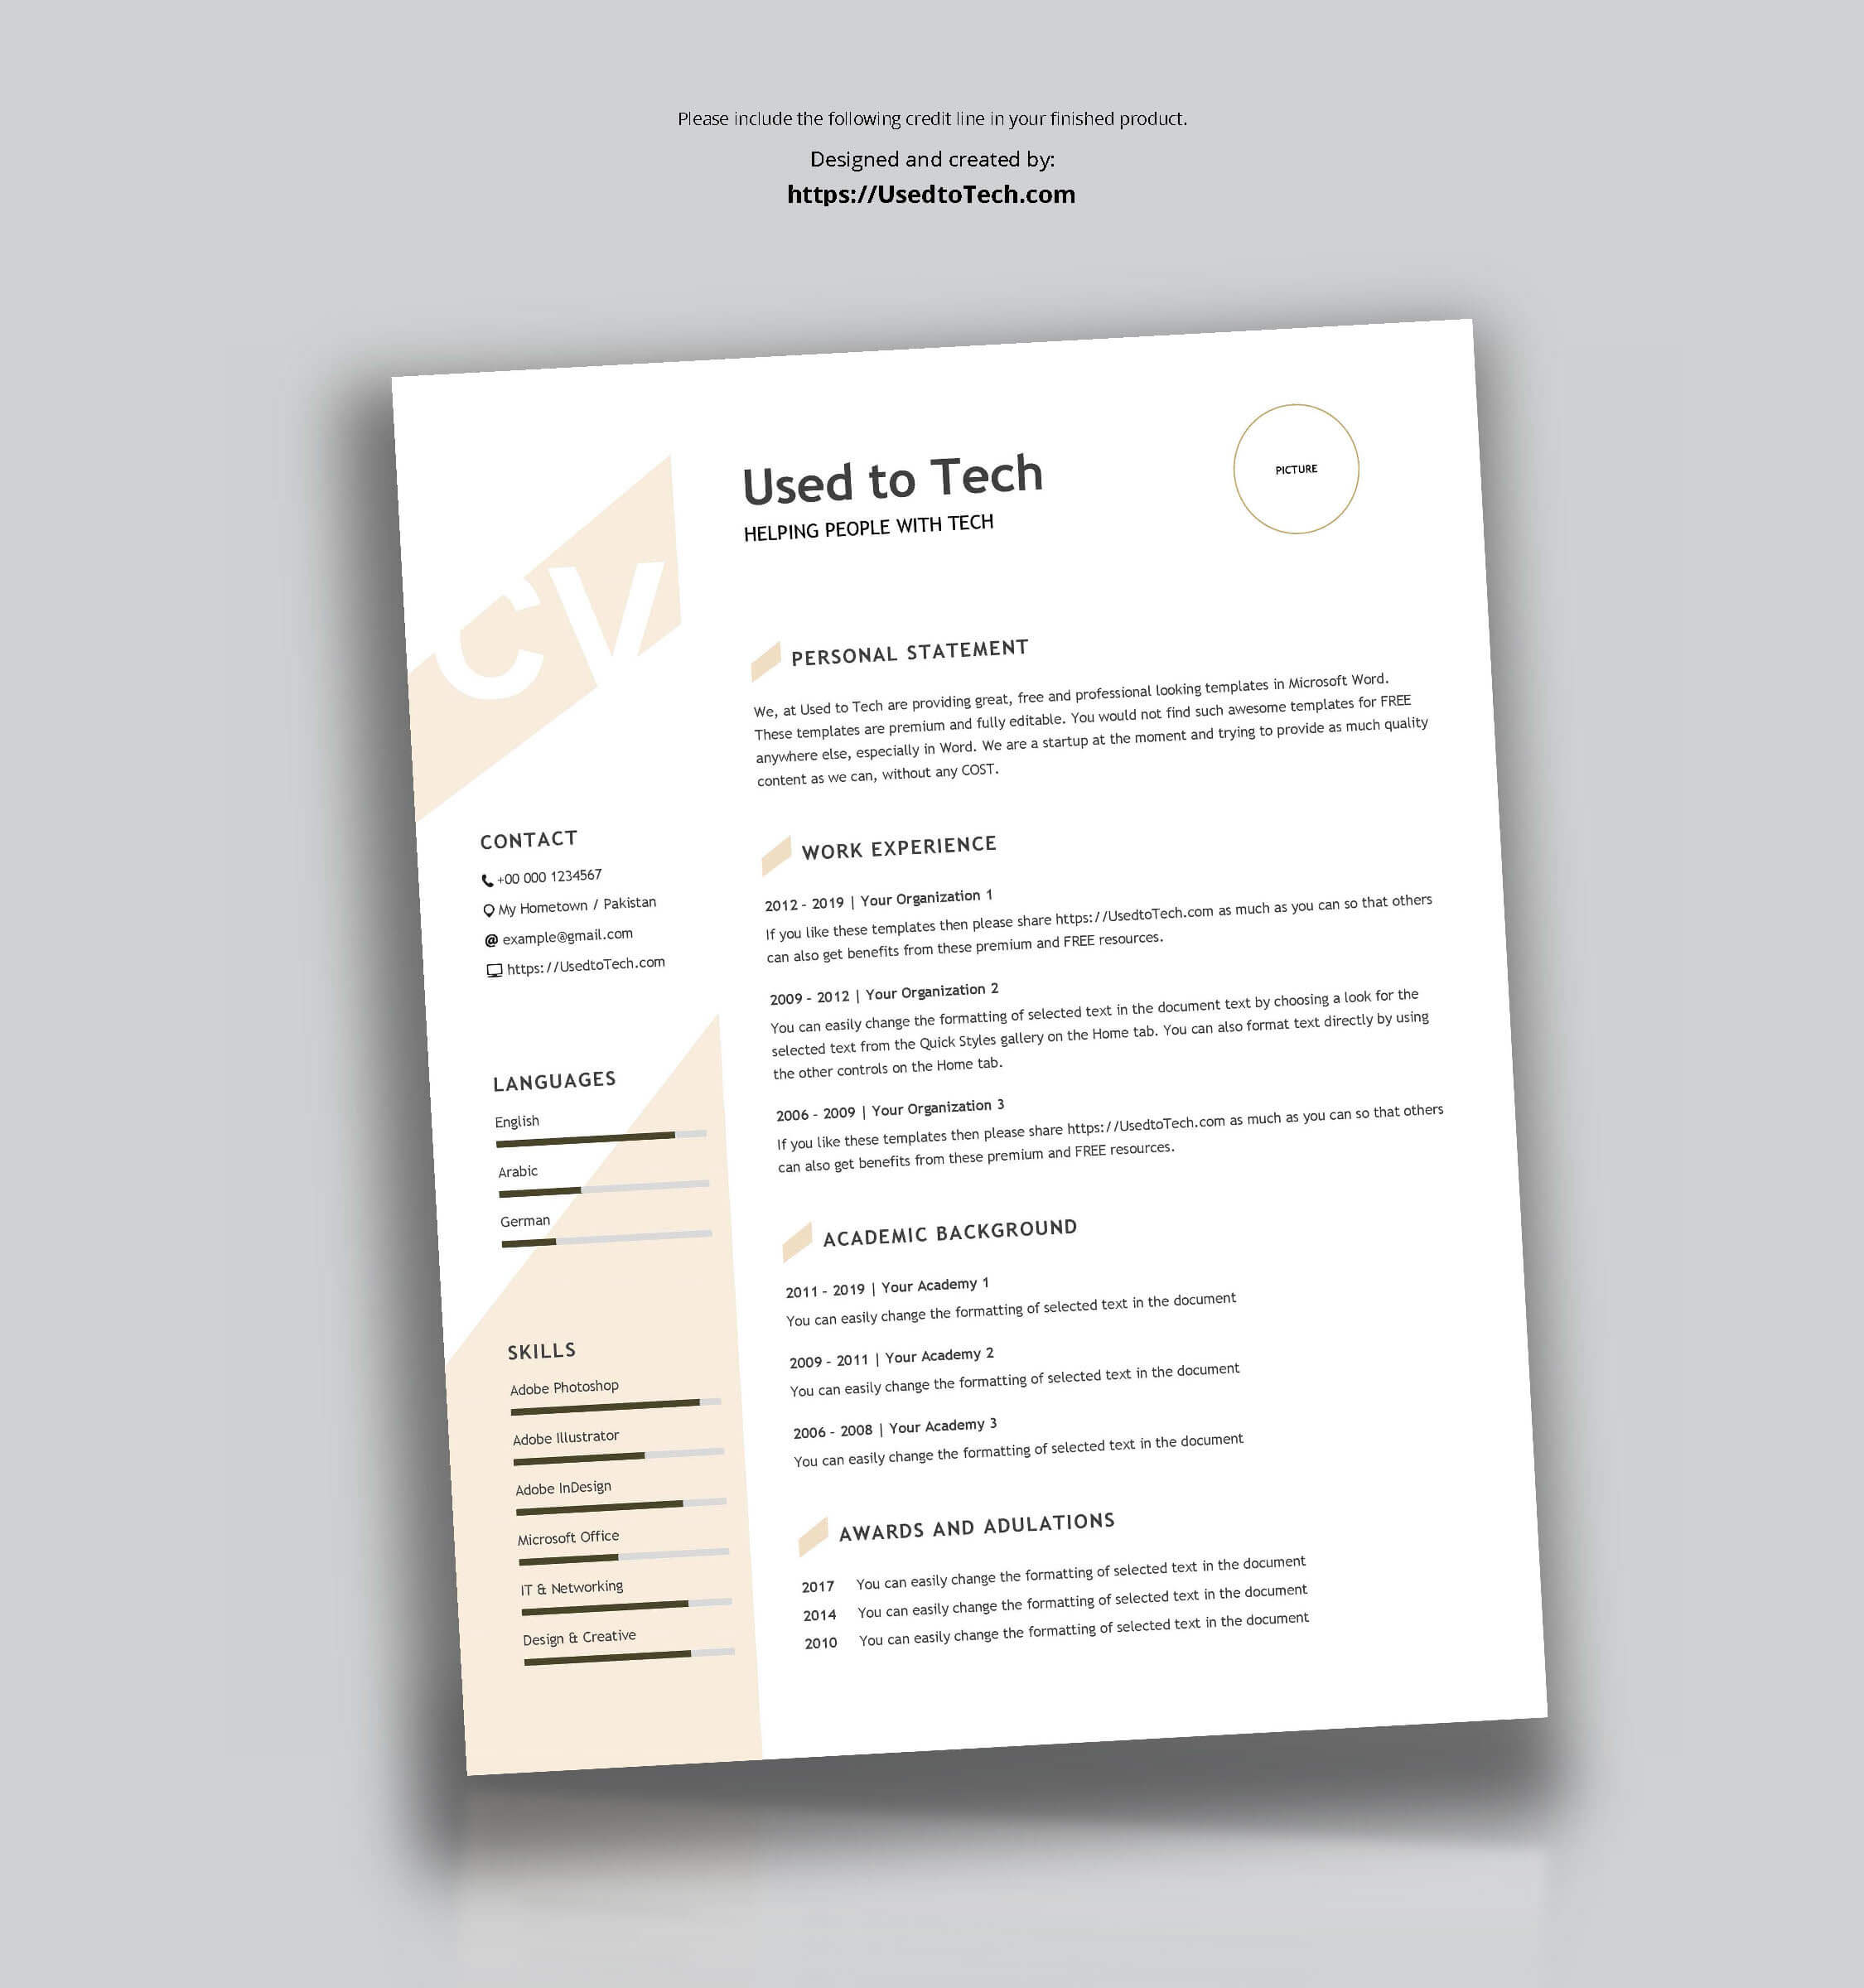 Modern Resume Template In Word Free - Used To Tech Within How To Find A Resume Template On Word